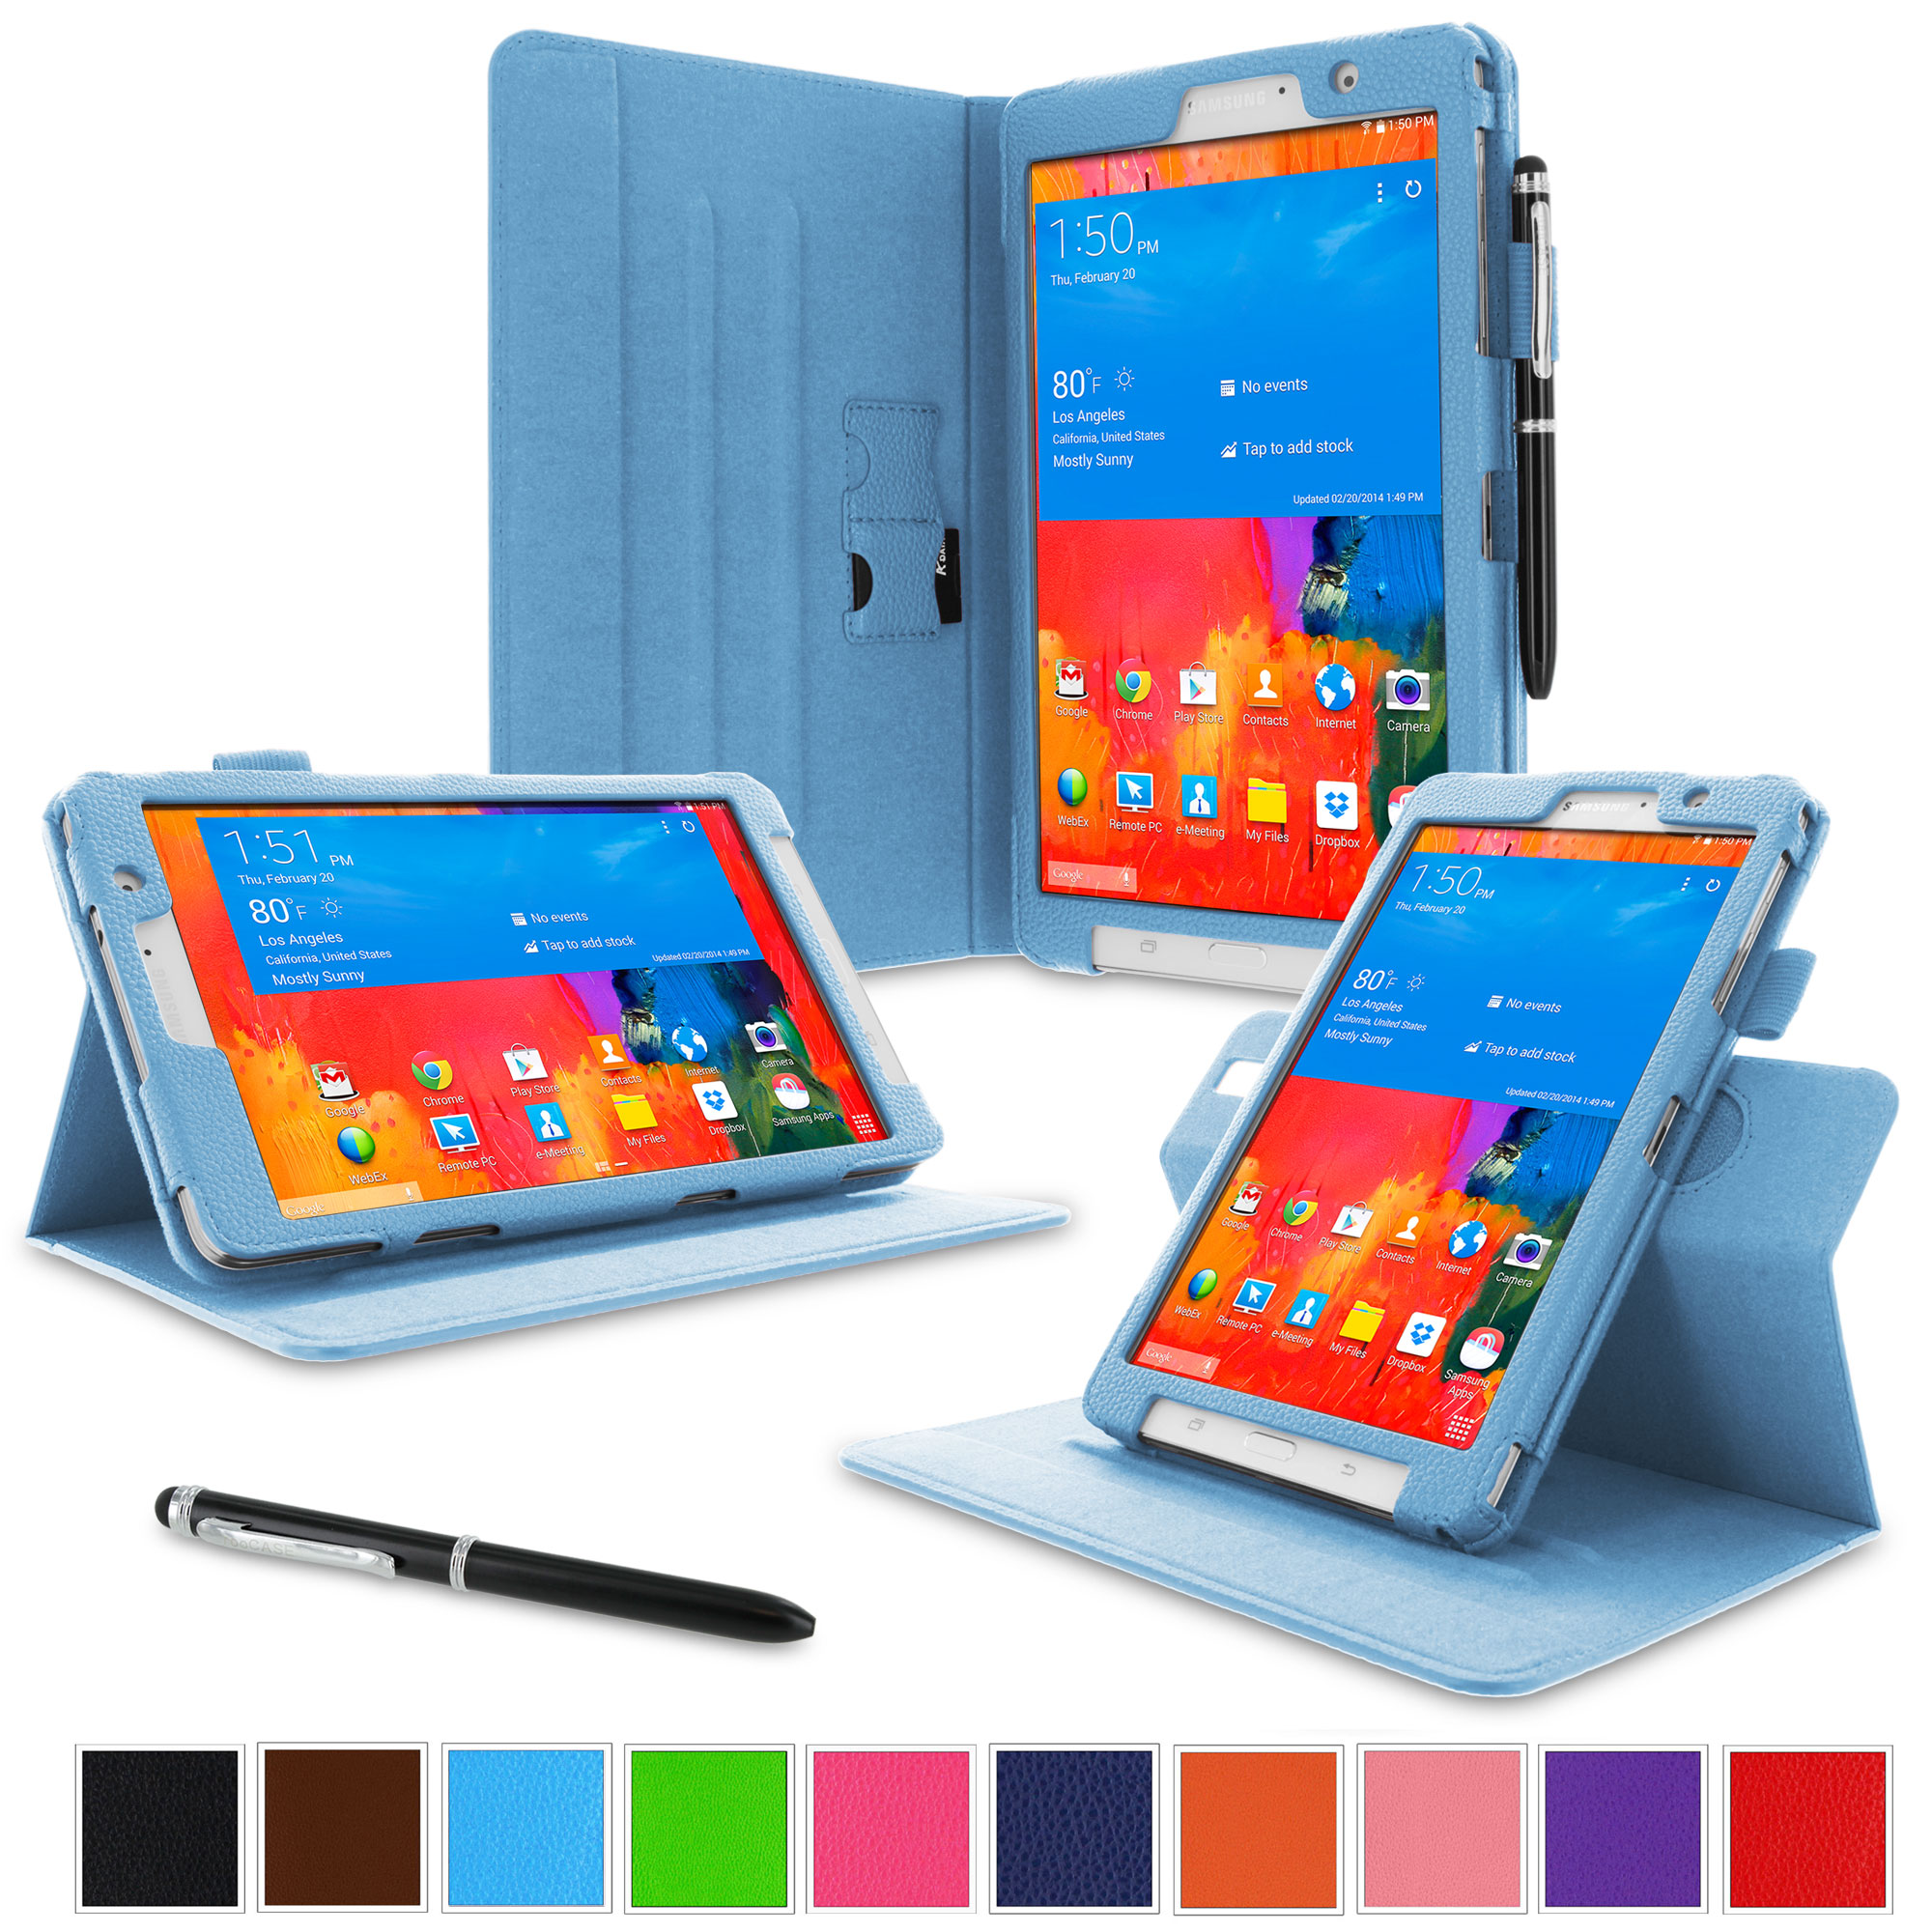 "rooCASE Samsung Galaxy Tab Pro 8.4 Case - Dual View Multi-Angle Stand 8.4-Inch 8.4"" Tablet Case - BLUE (With Auto Wake / Sleep Cover)"